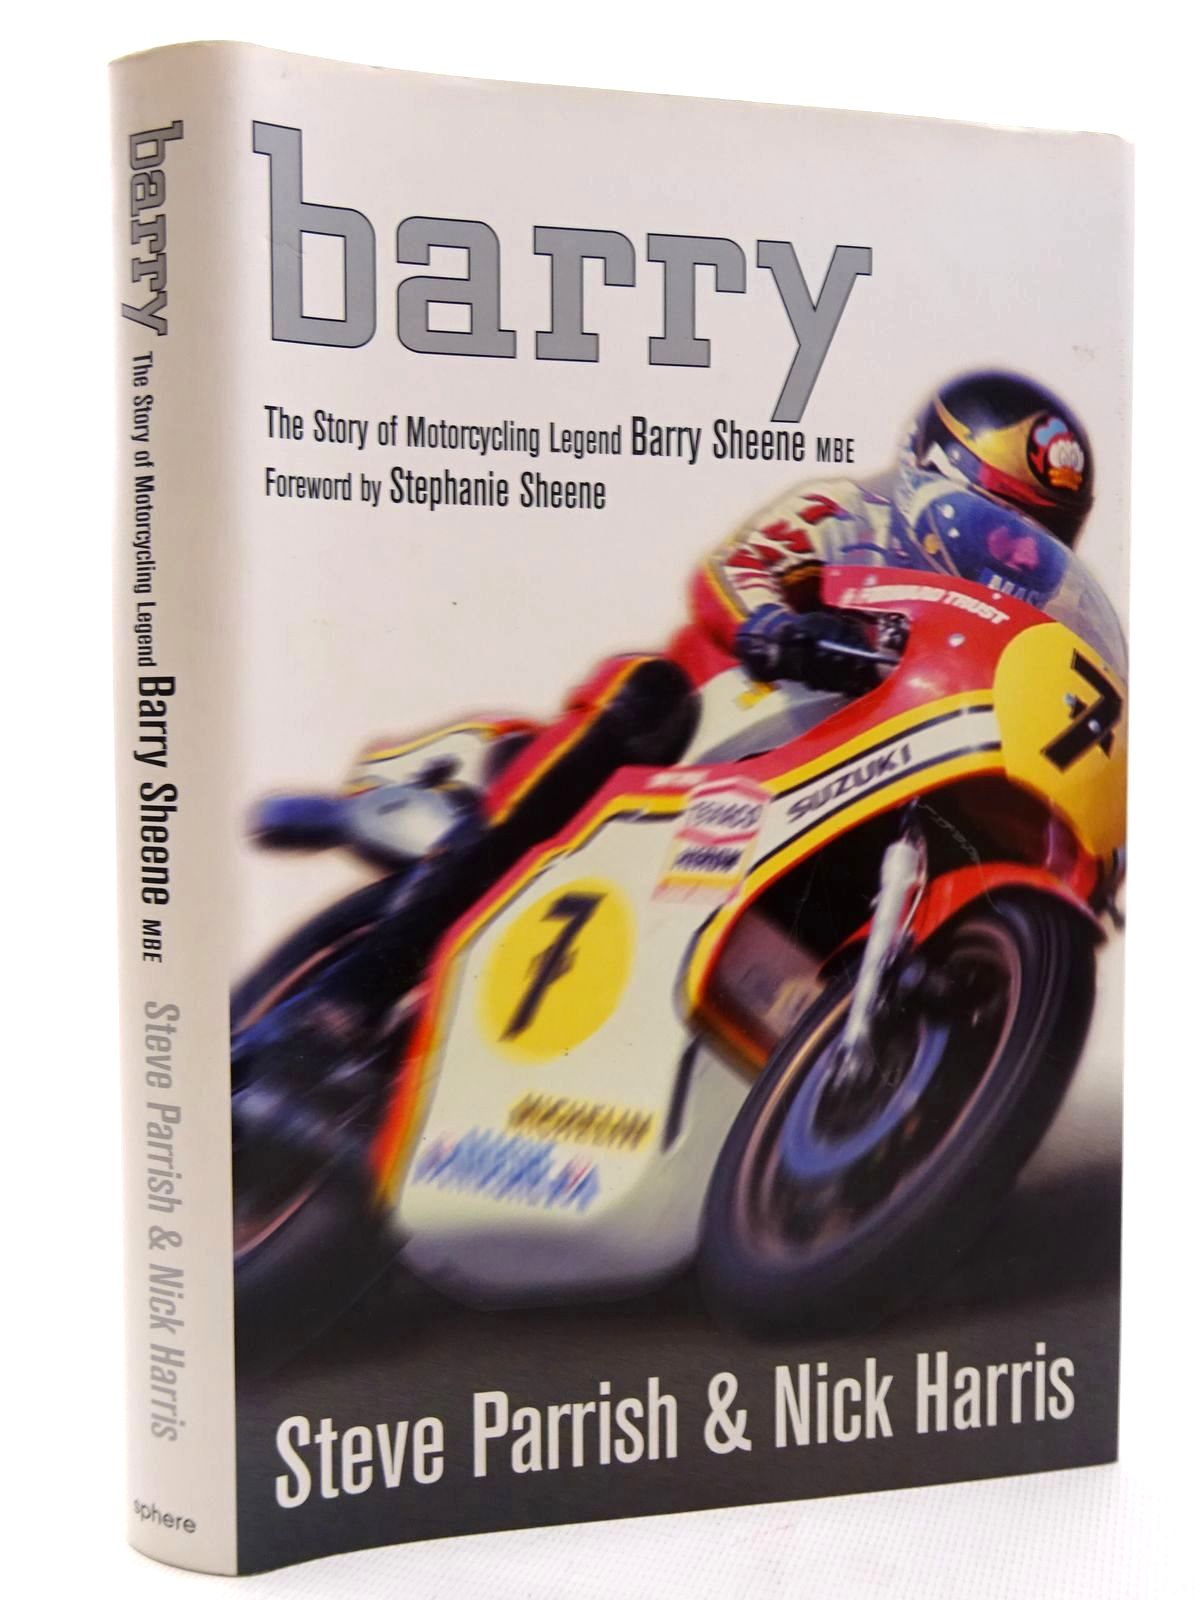 Photo of BARRY THE STORY OF MOTORCYCLING LEGEND BARRY SHEENE, MBE written by Parrish, Steve<br />Harris, Nick published by Sphere (STOCK CODE: 1610408)  for sale by Stella & Rose's Books